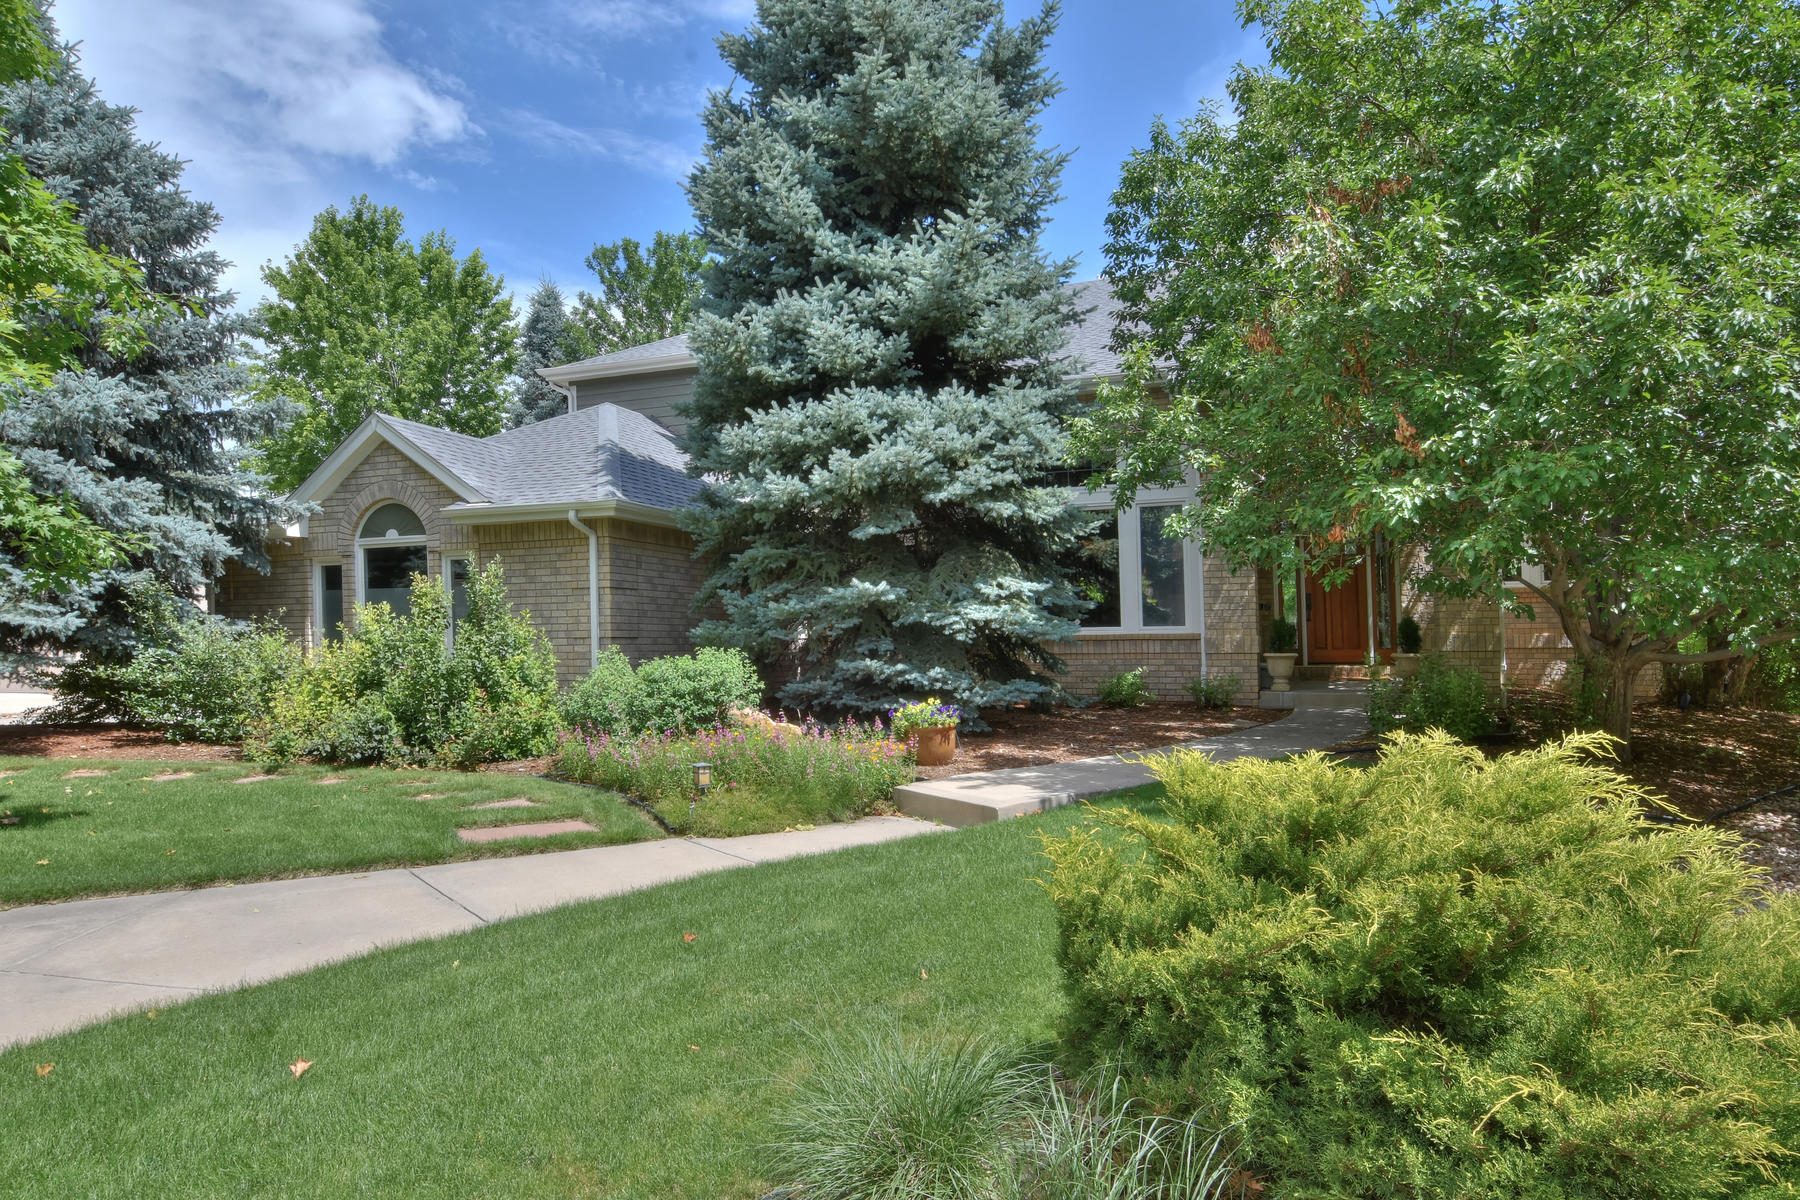 Single Family Homes for Sale at Beautifully Appointed Blue Heron Home 2424 Ginny Way Lafayette, Colorado 80026 United States